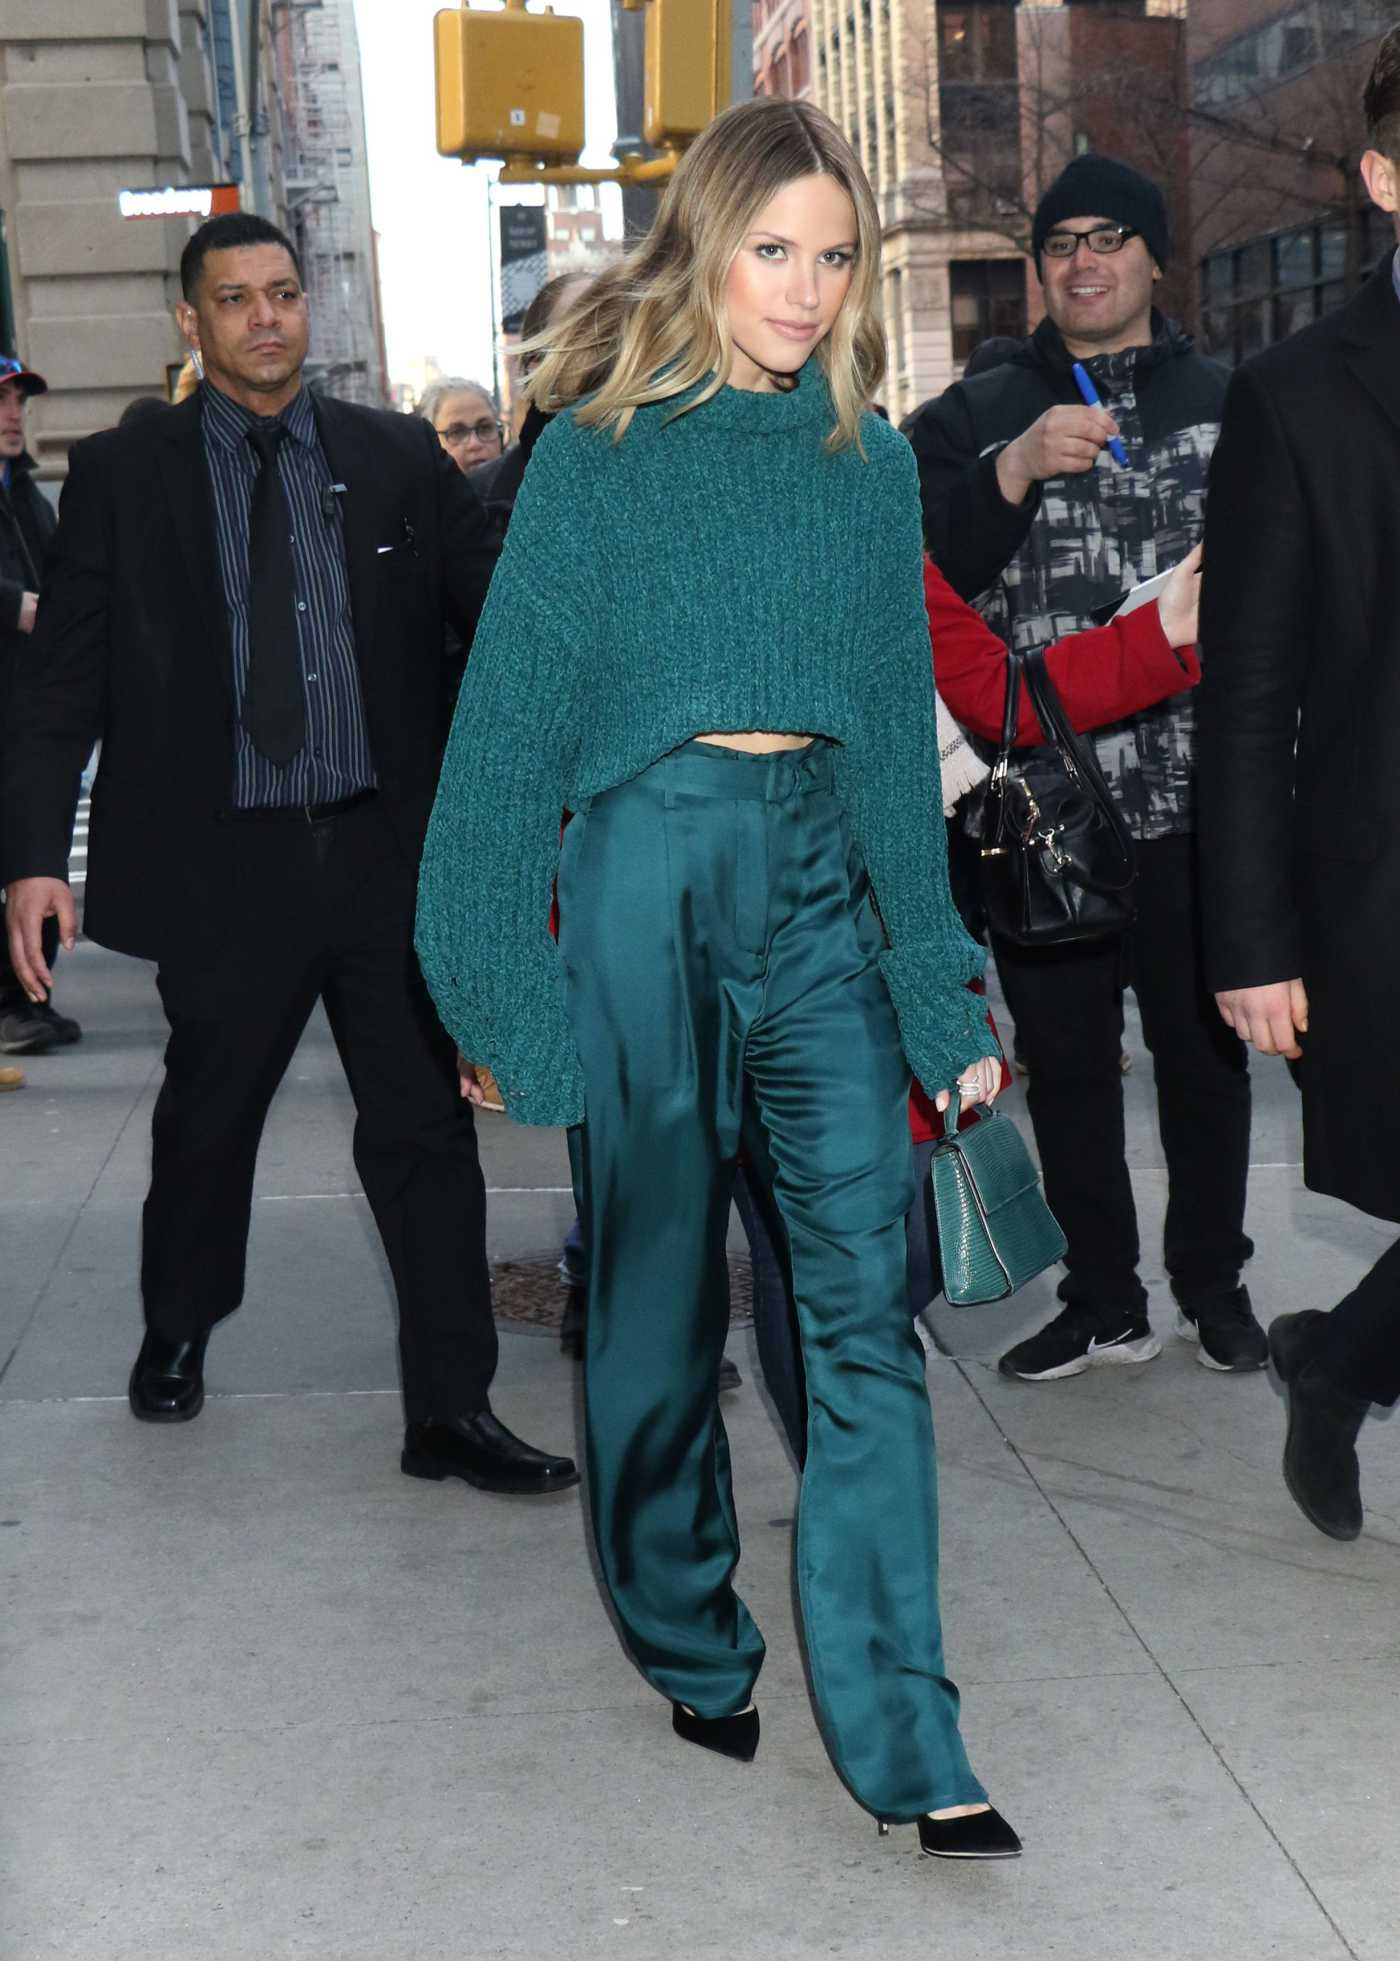 Halston Sage in a Green Sweater Leaves AOL Build Series in NY 01/15/2020